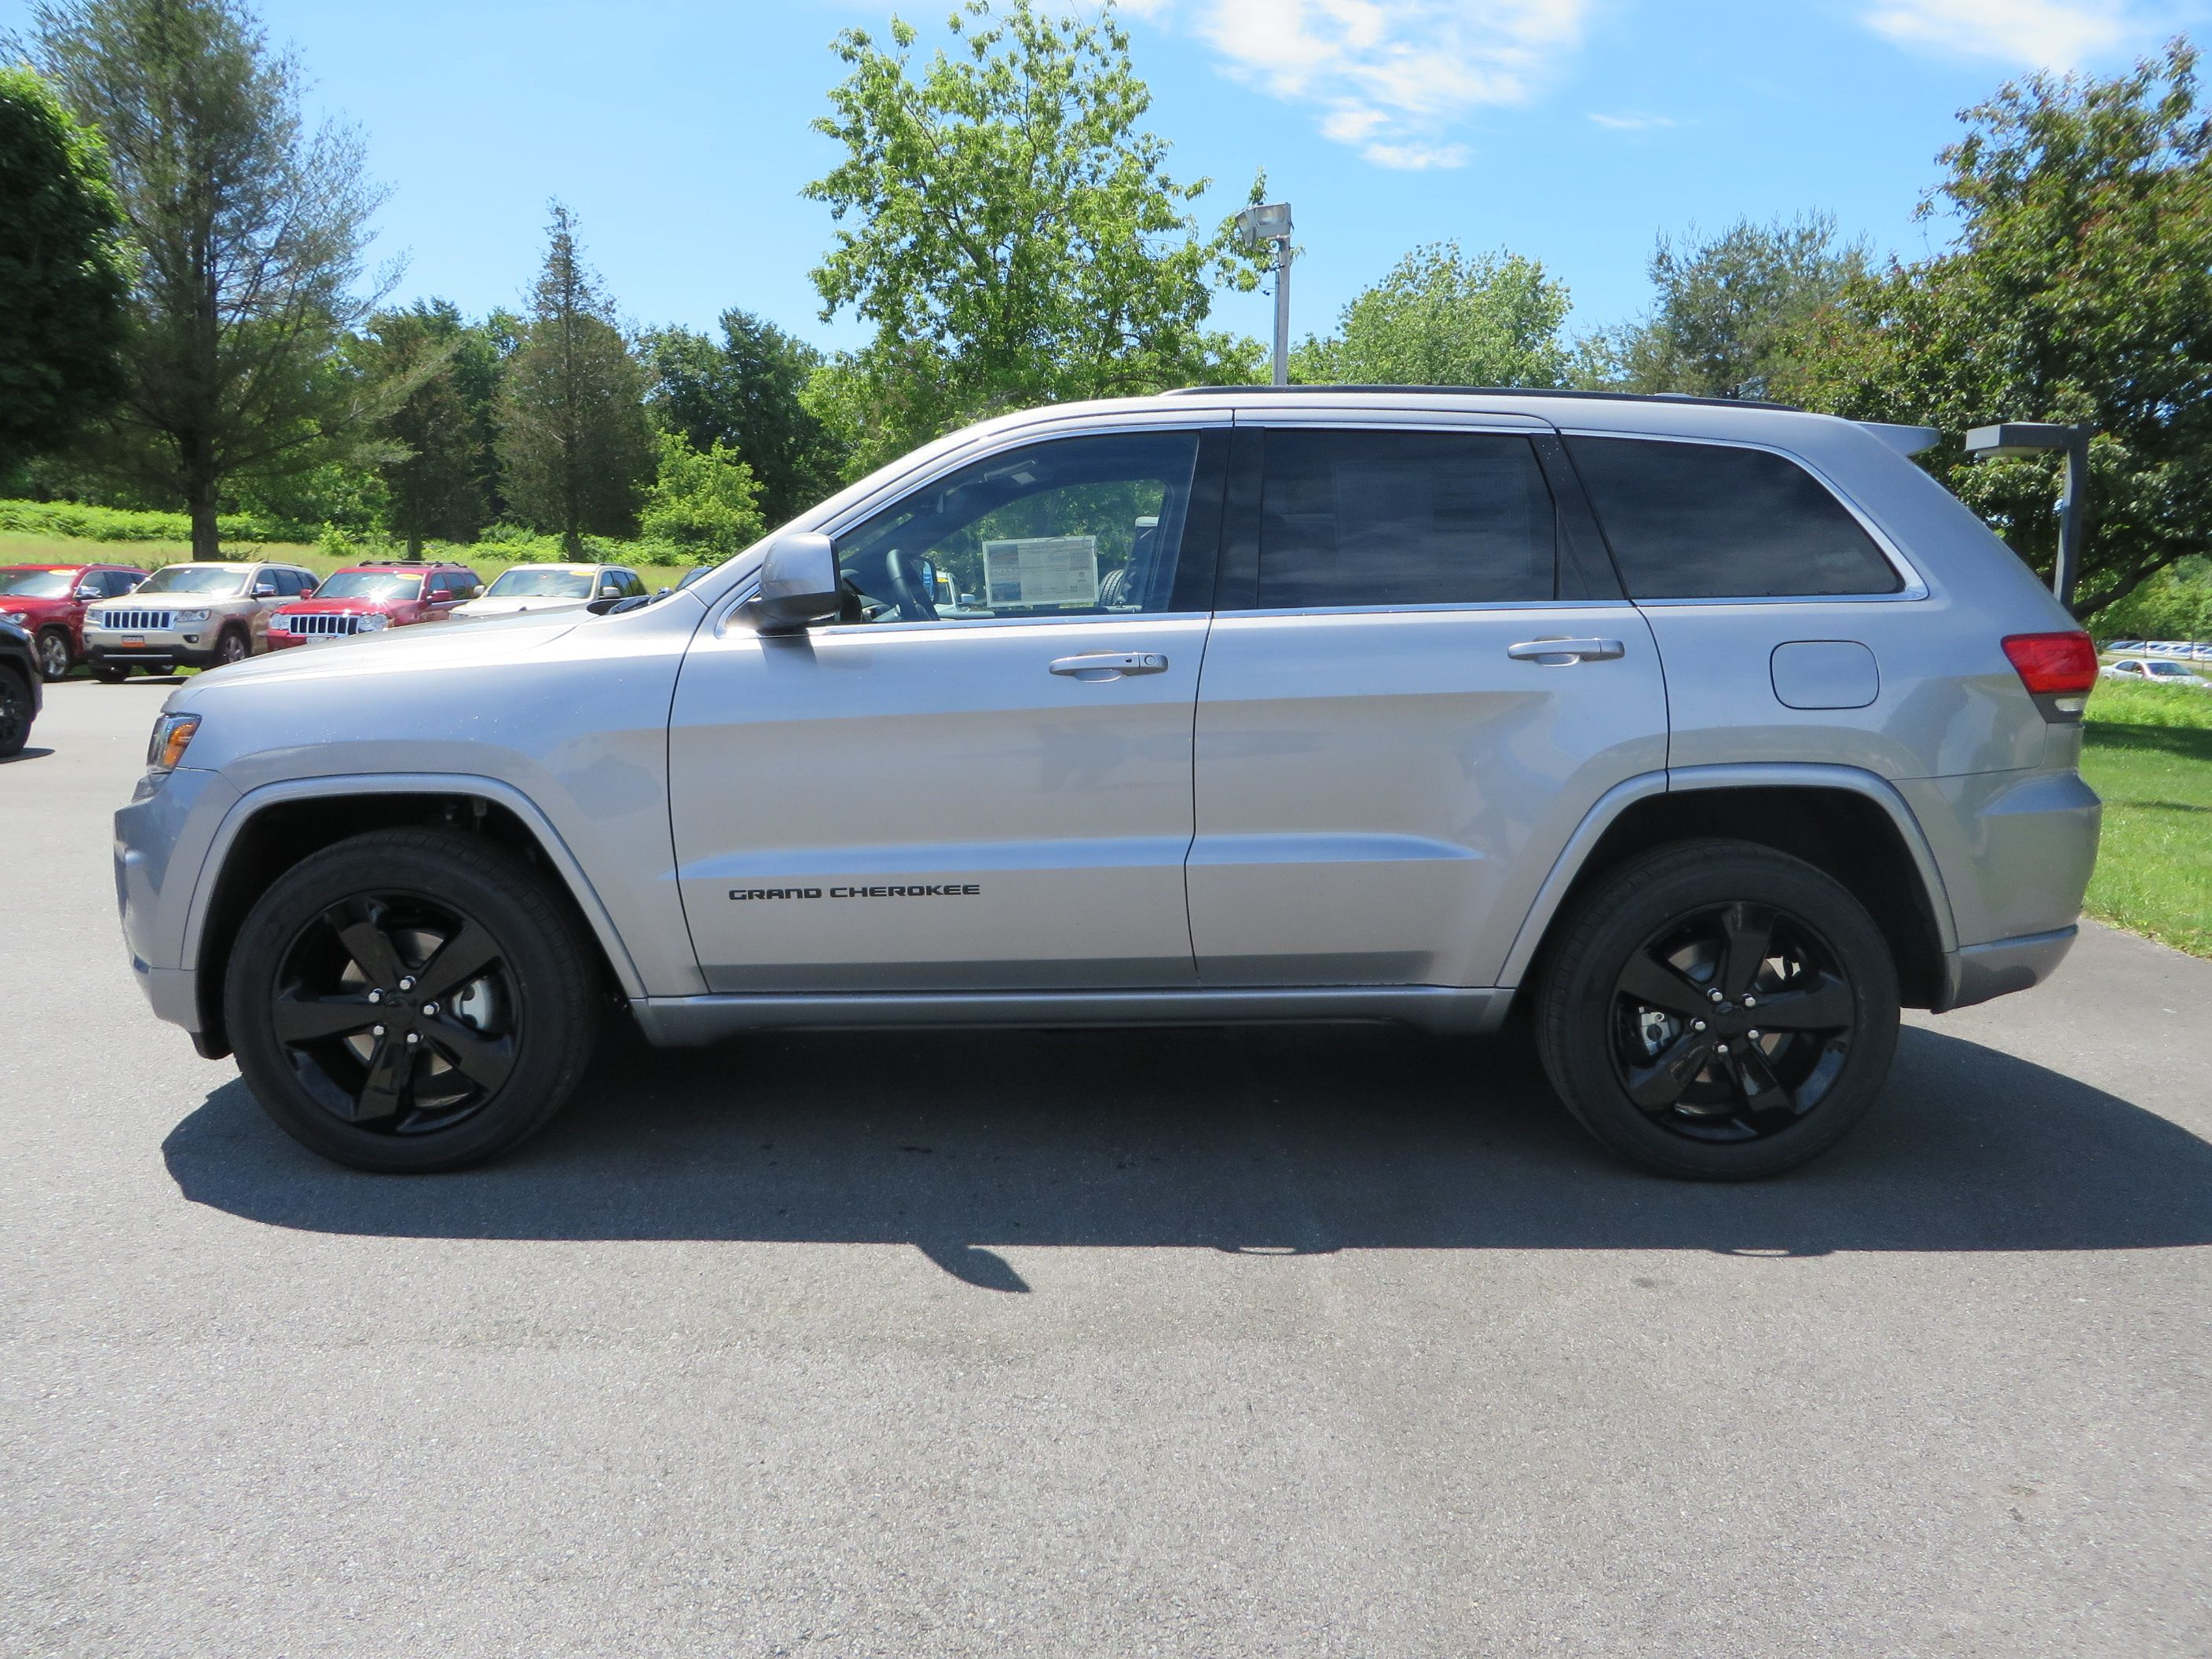 Jeep grand cherokee wk2 bull bar jeep cherokee rvinyl http www rvinyl com jeep accessories html cars pinterest bull